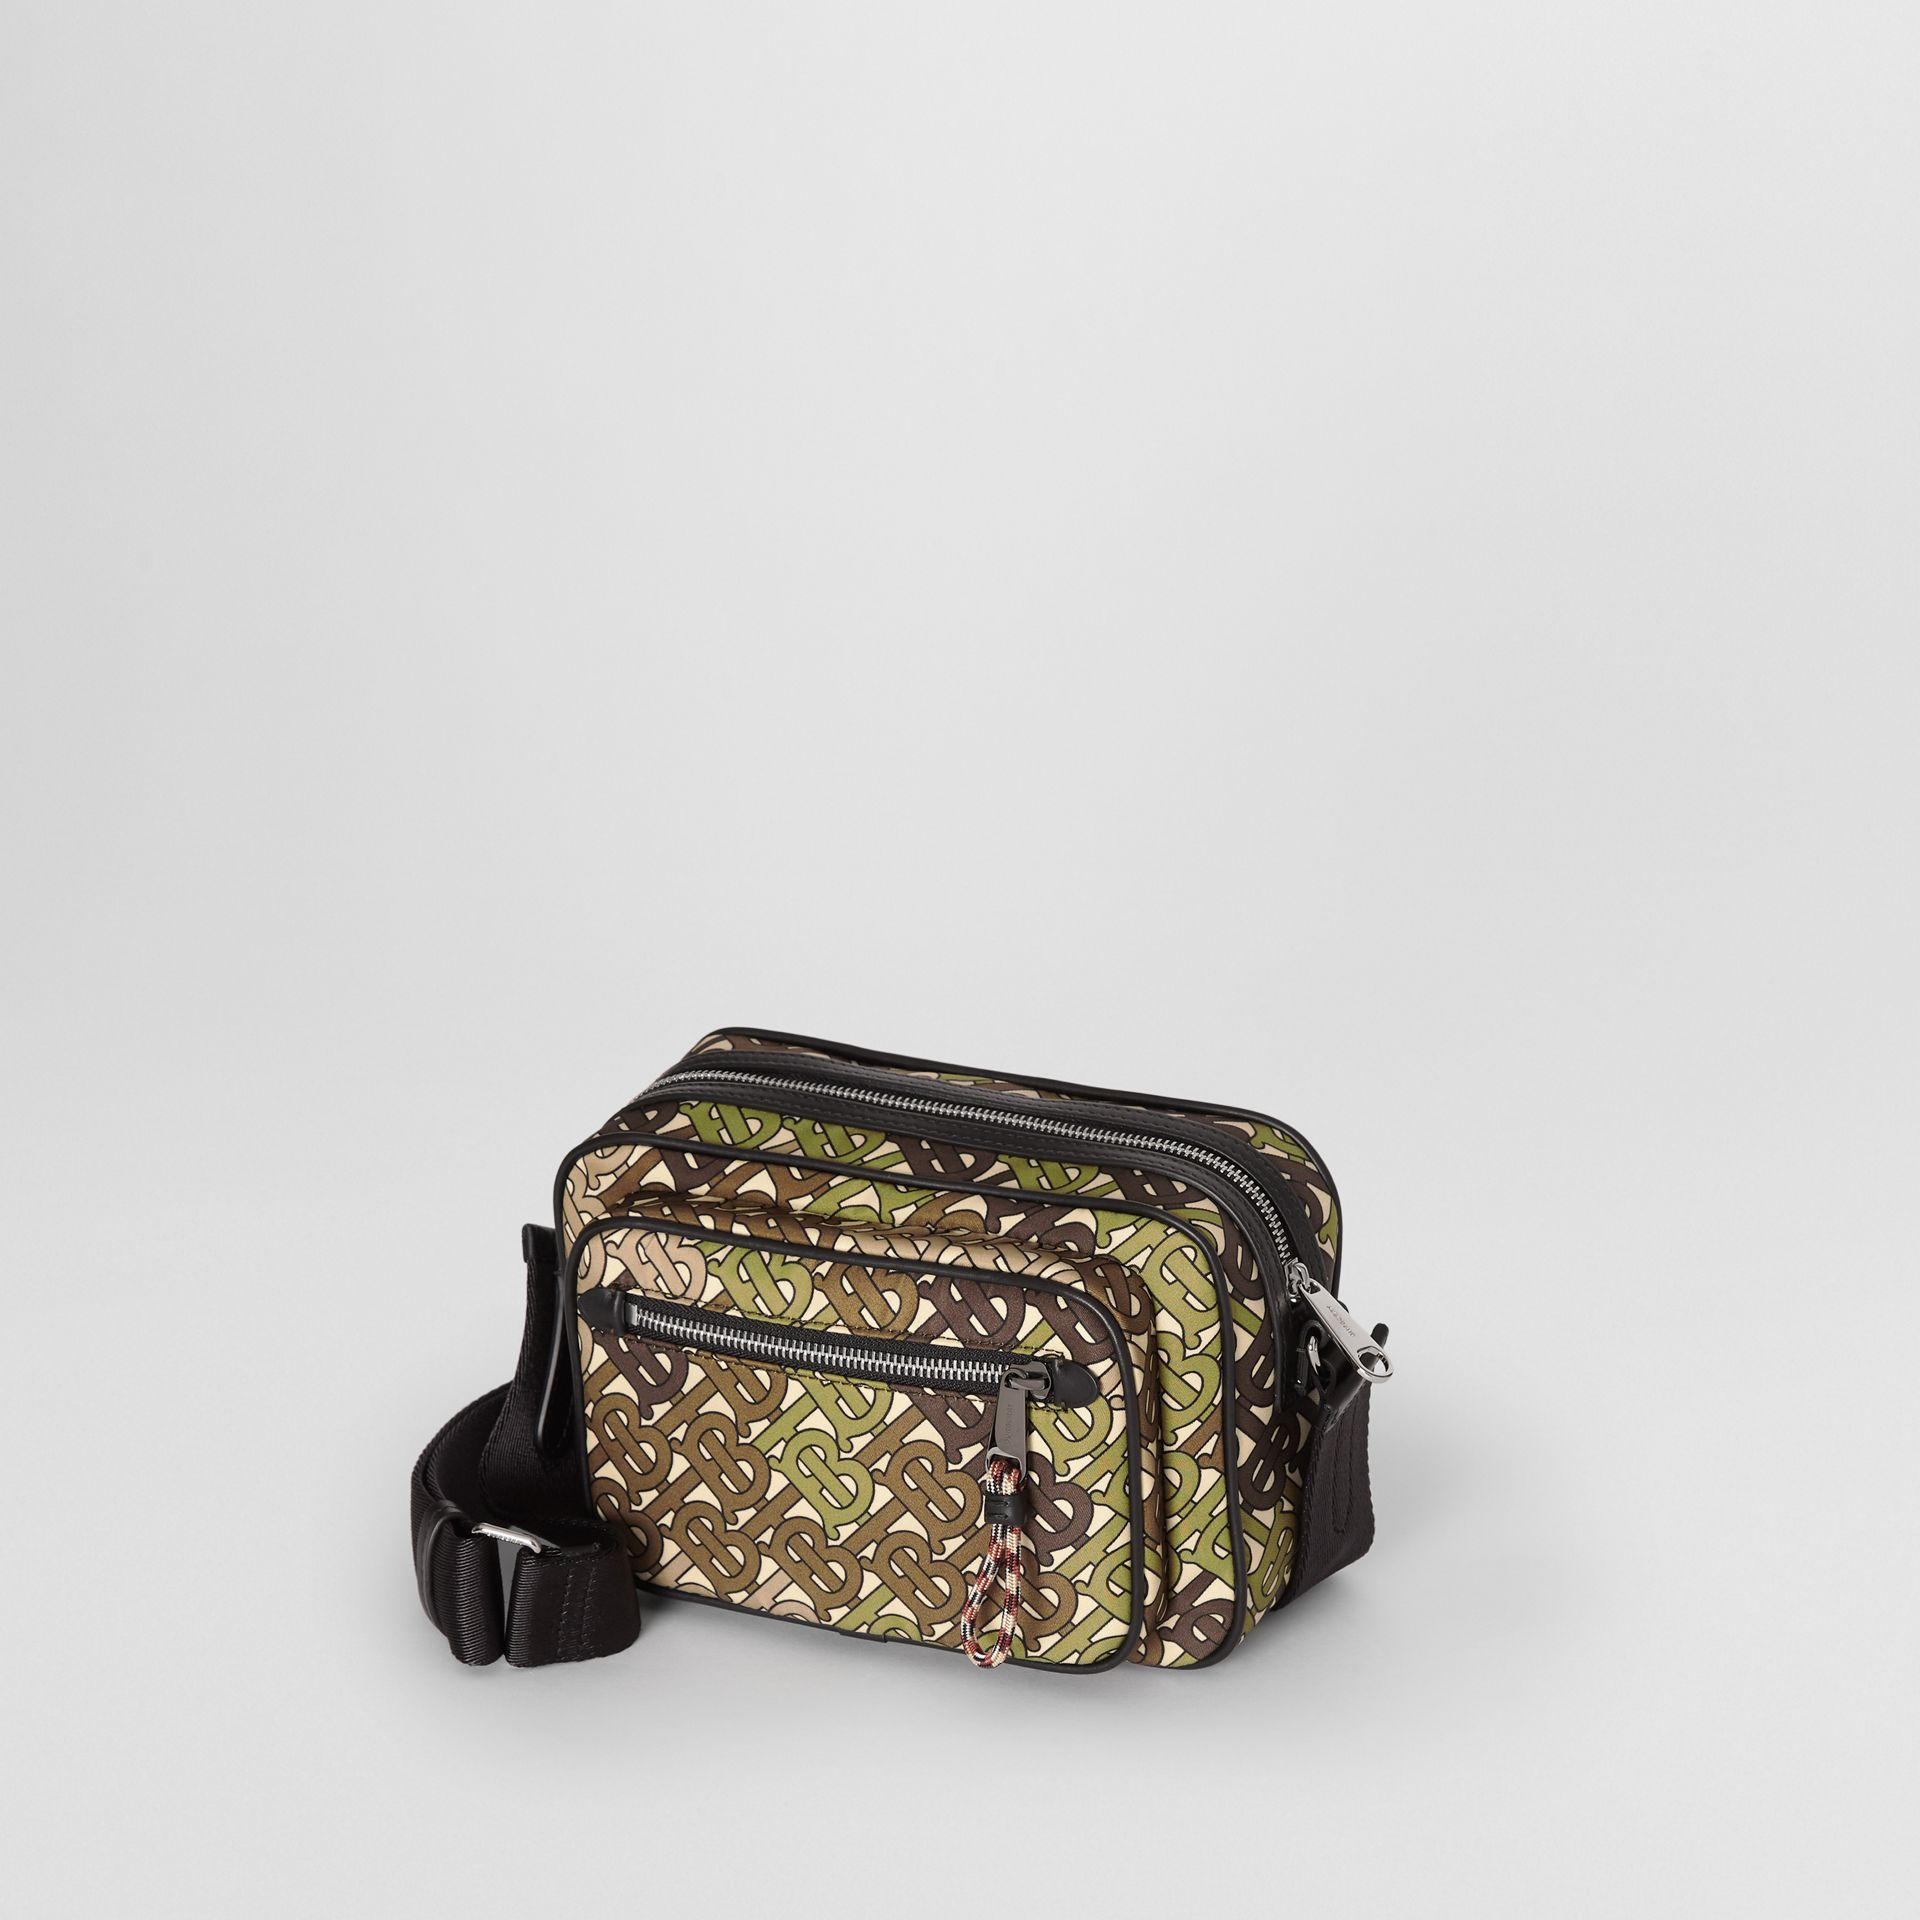 Monogram Print and Leather Crossbody Bag in Khaki Green - Men | Burberry - gallery image 3